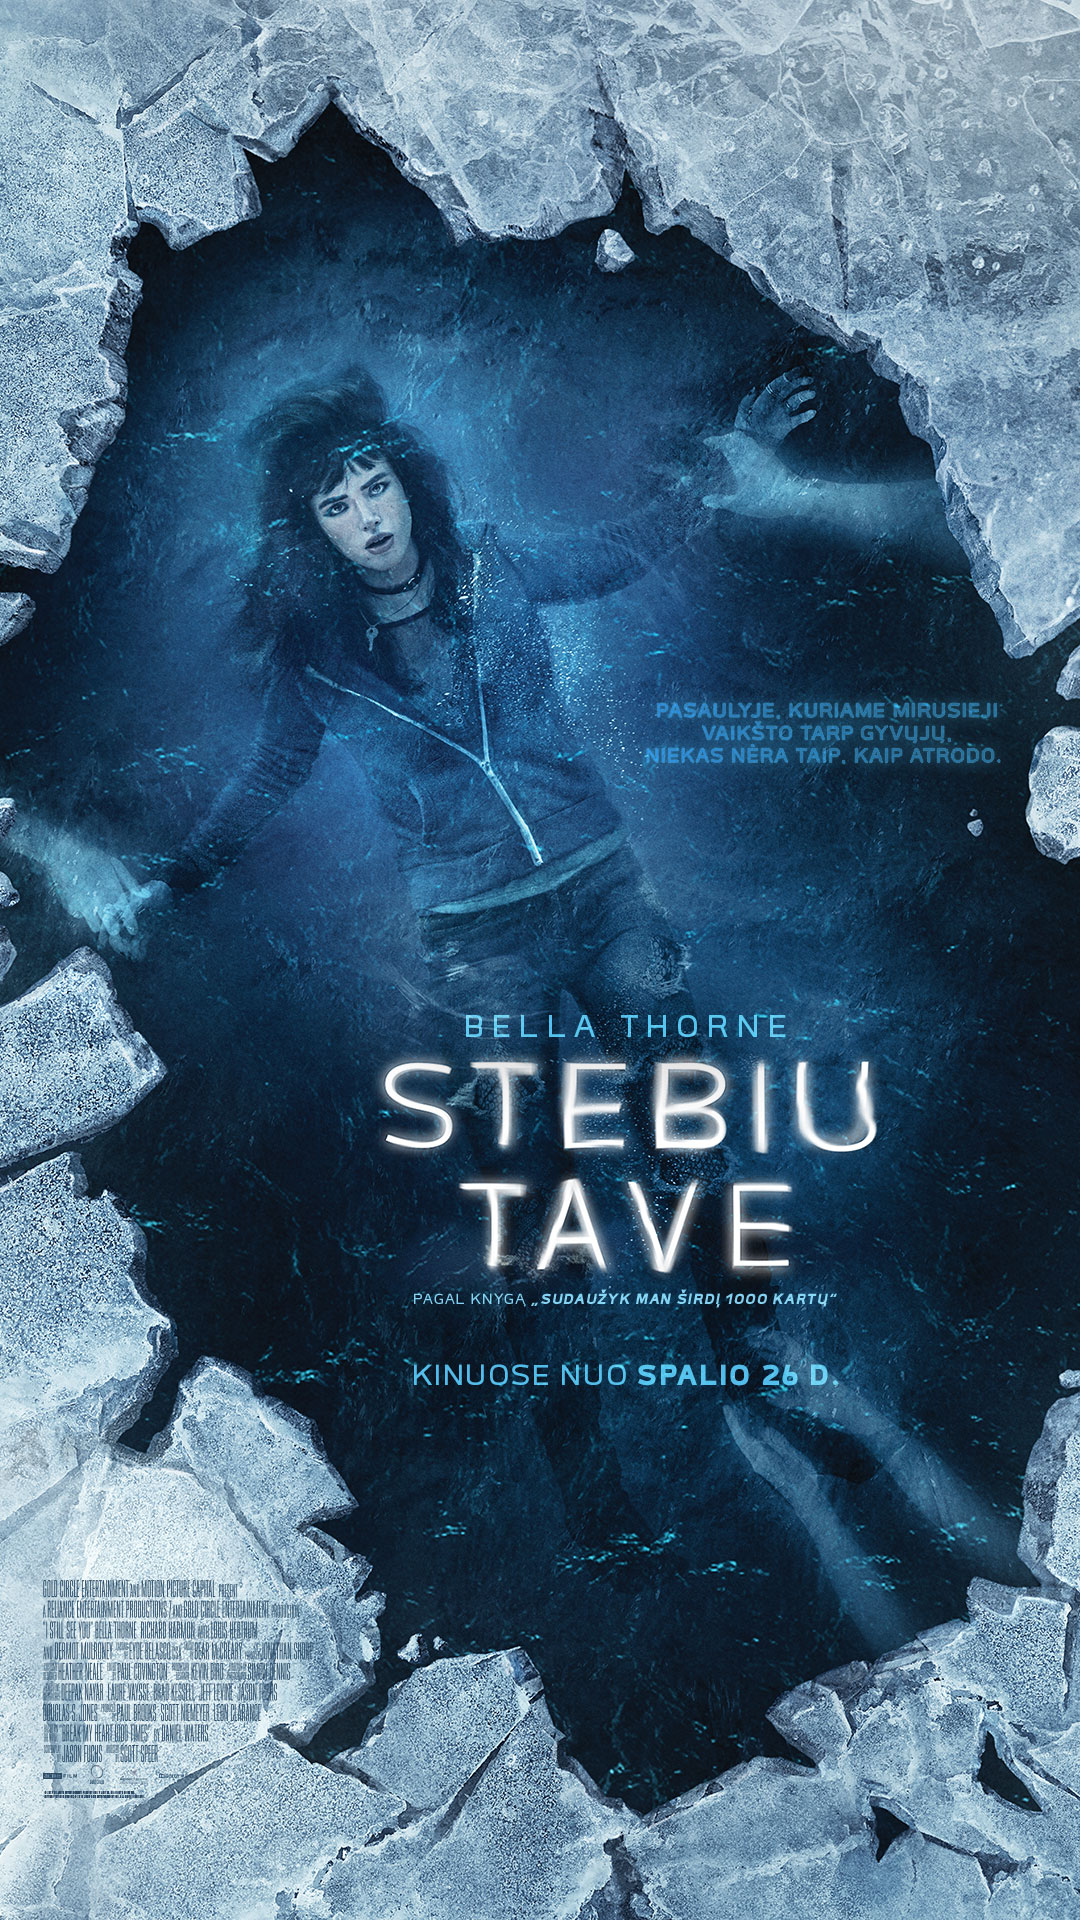 STEBIU TAVE (I still see you)